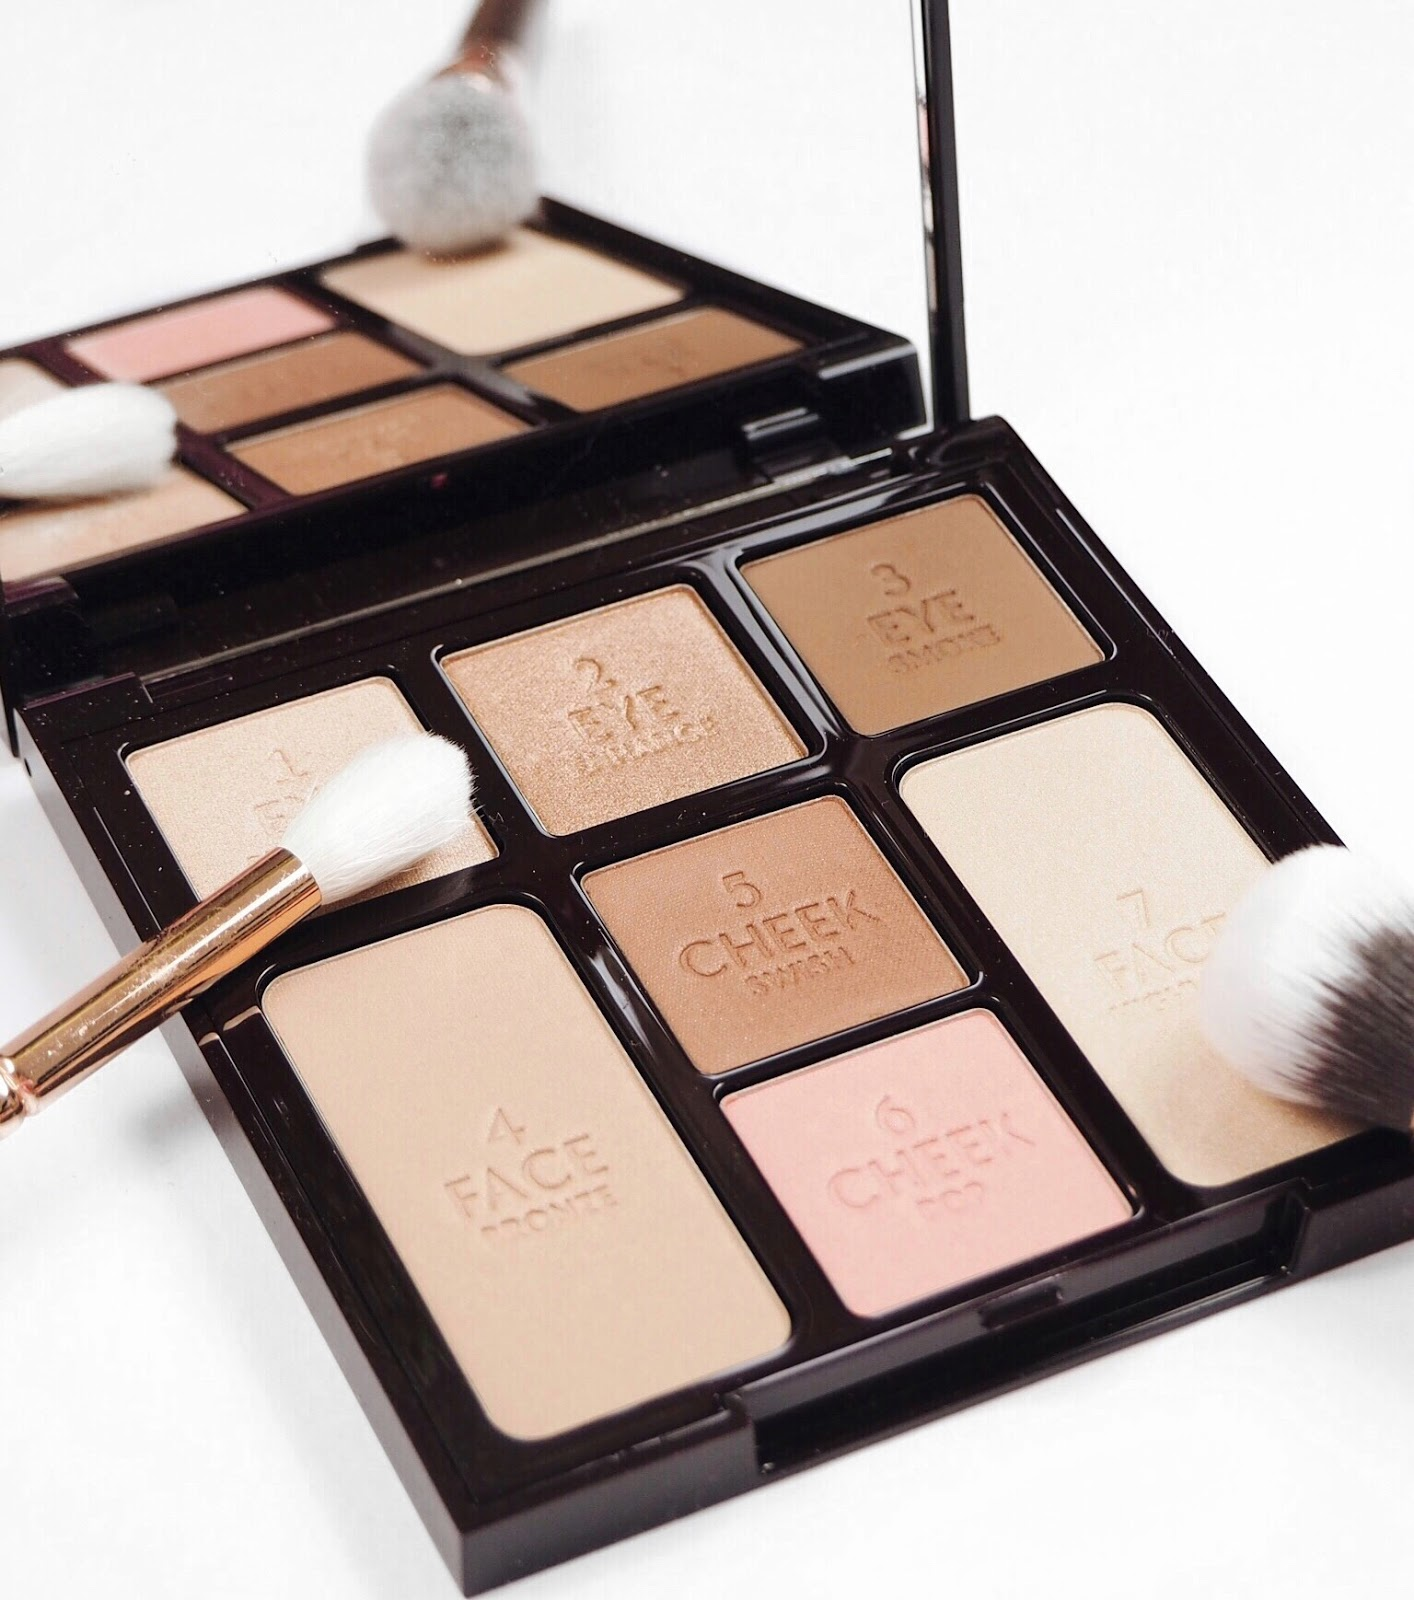 Charlotte Tilbury Beauty Glow Look In An Instant Palette close up, with rose gold and bronzed eyeshadows, and rose gold Zoeva makeup brushes on a white background as a flatlay for a UK beauty blog review